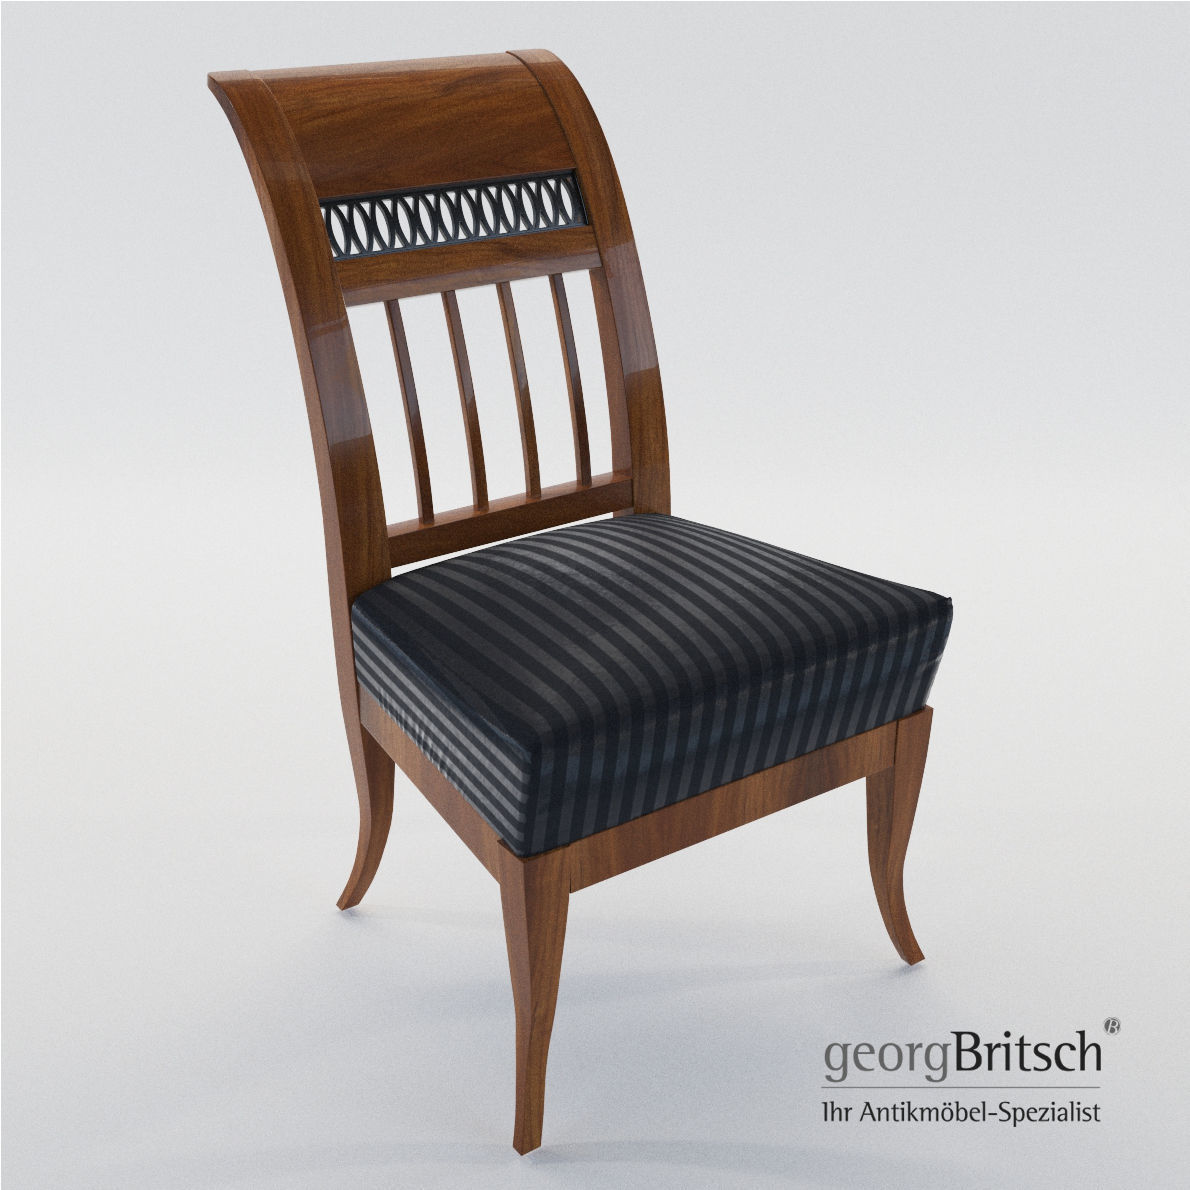 Biedermeier Chair   Munich   Germany 1805   Georg Britsch 3d Model Max Obj  Mtl Fbx ...